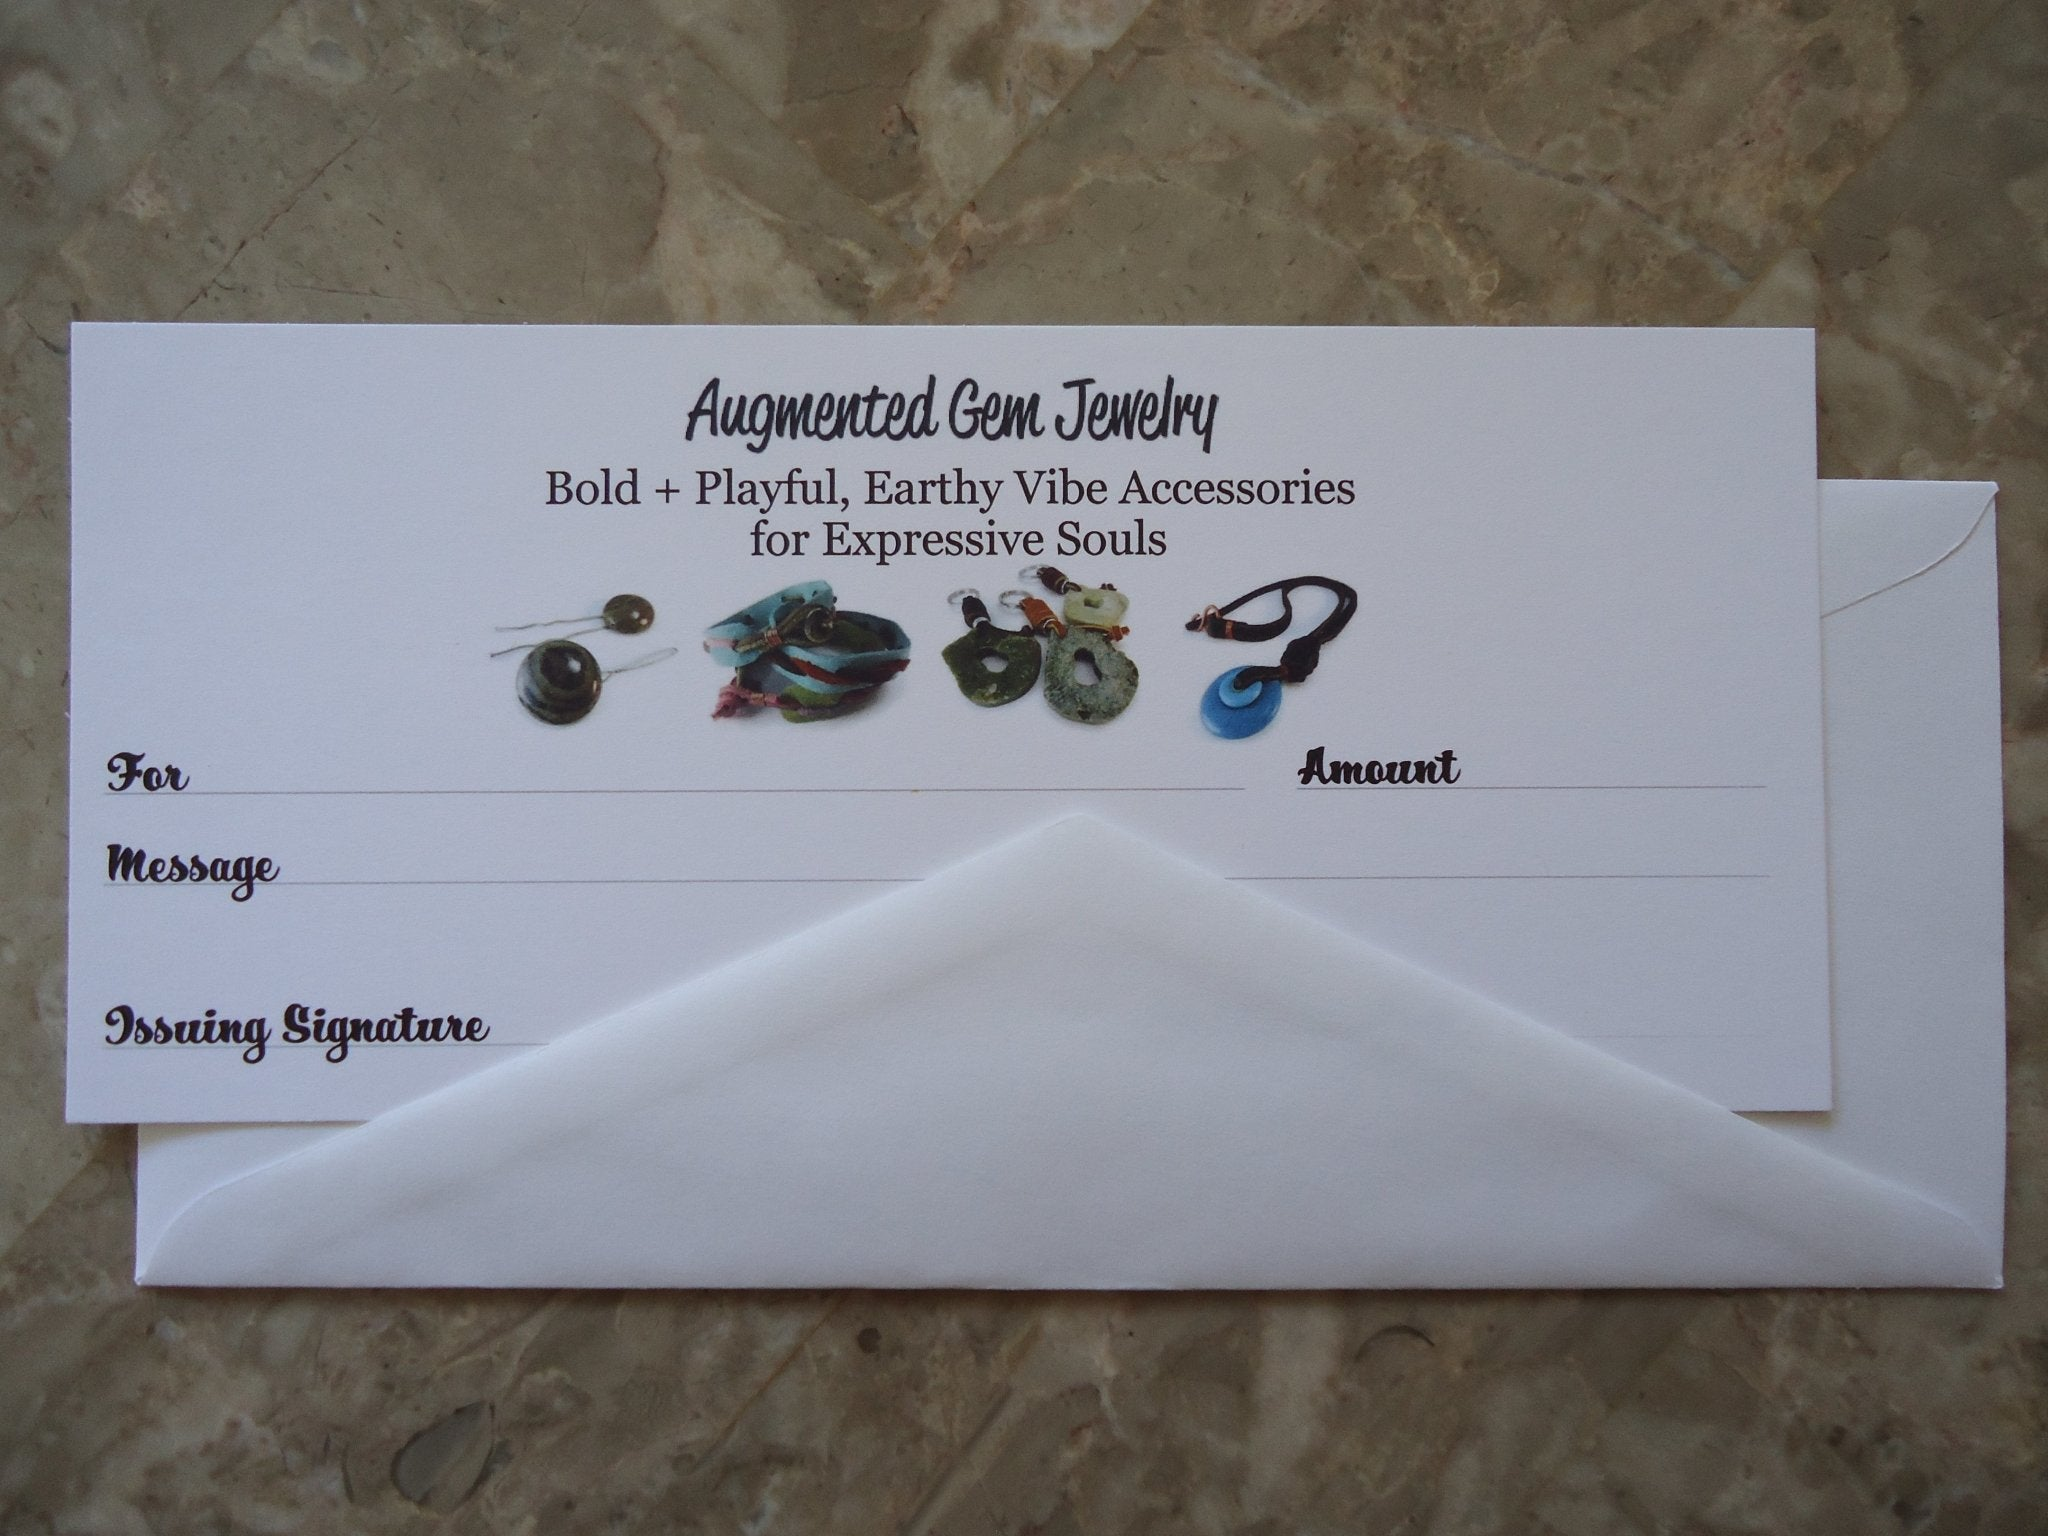 Paper Gift Certificates - Augmented Gem Jewelry